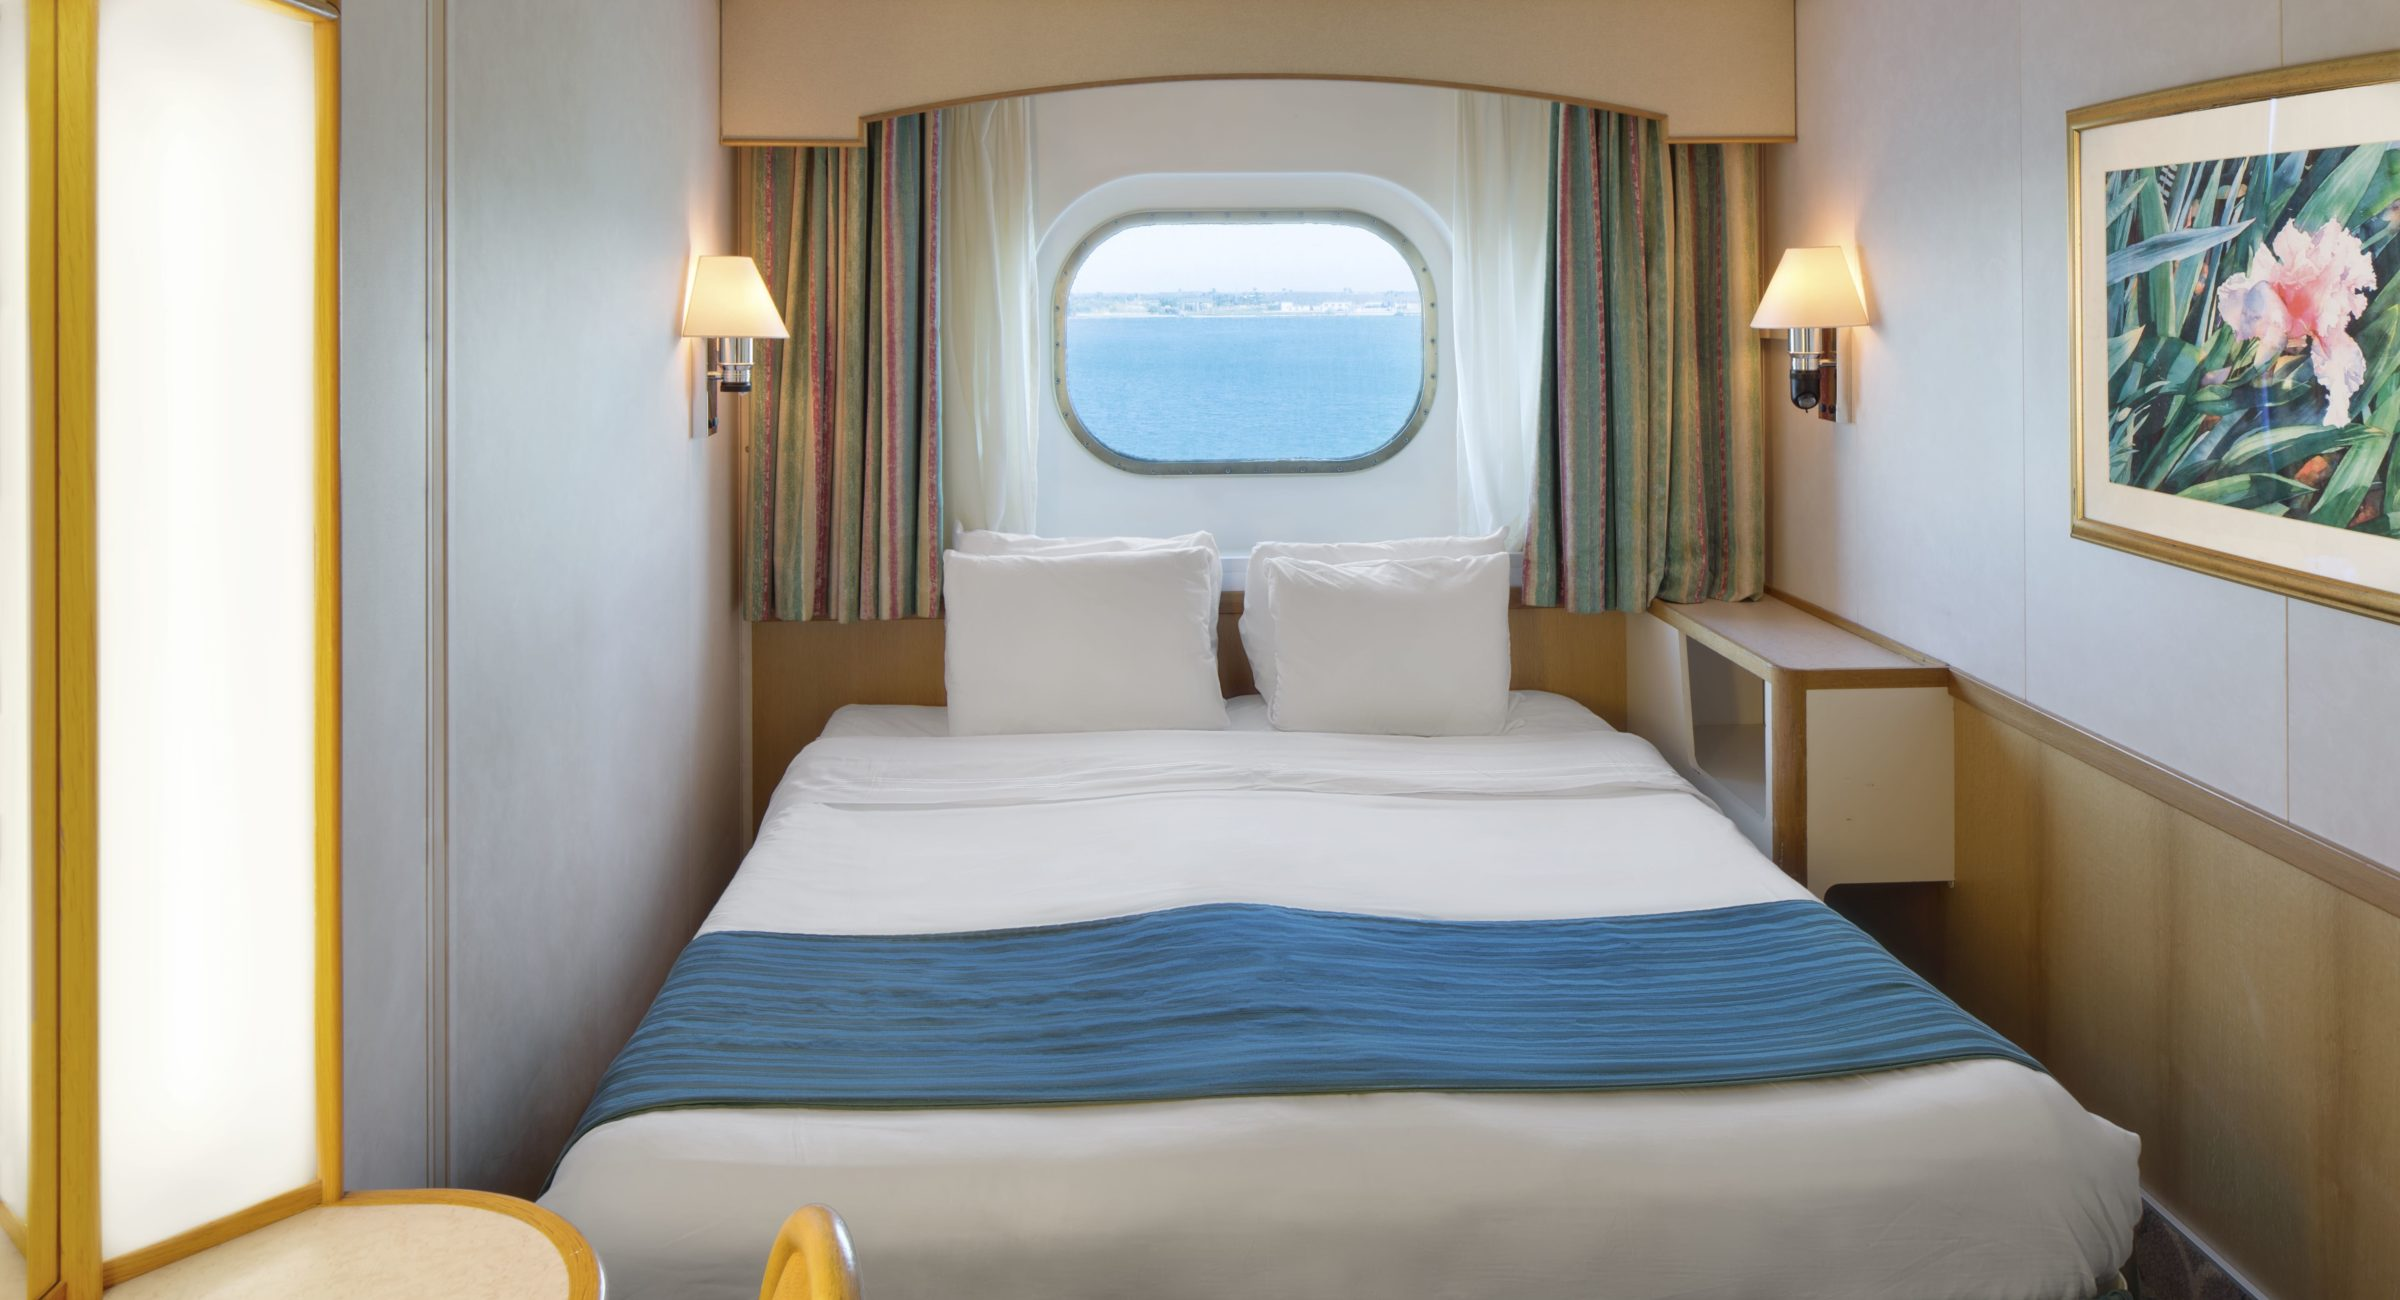 Ocean View Stateroom Cat. F3 - Room #4548 Deck 4 Forward Portside Majesty of the Seas - Royal Caribbean International